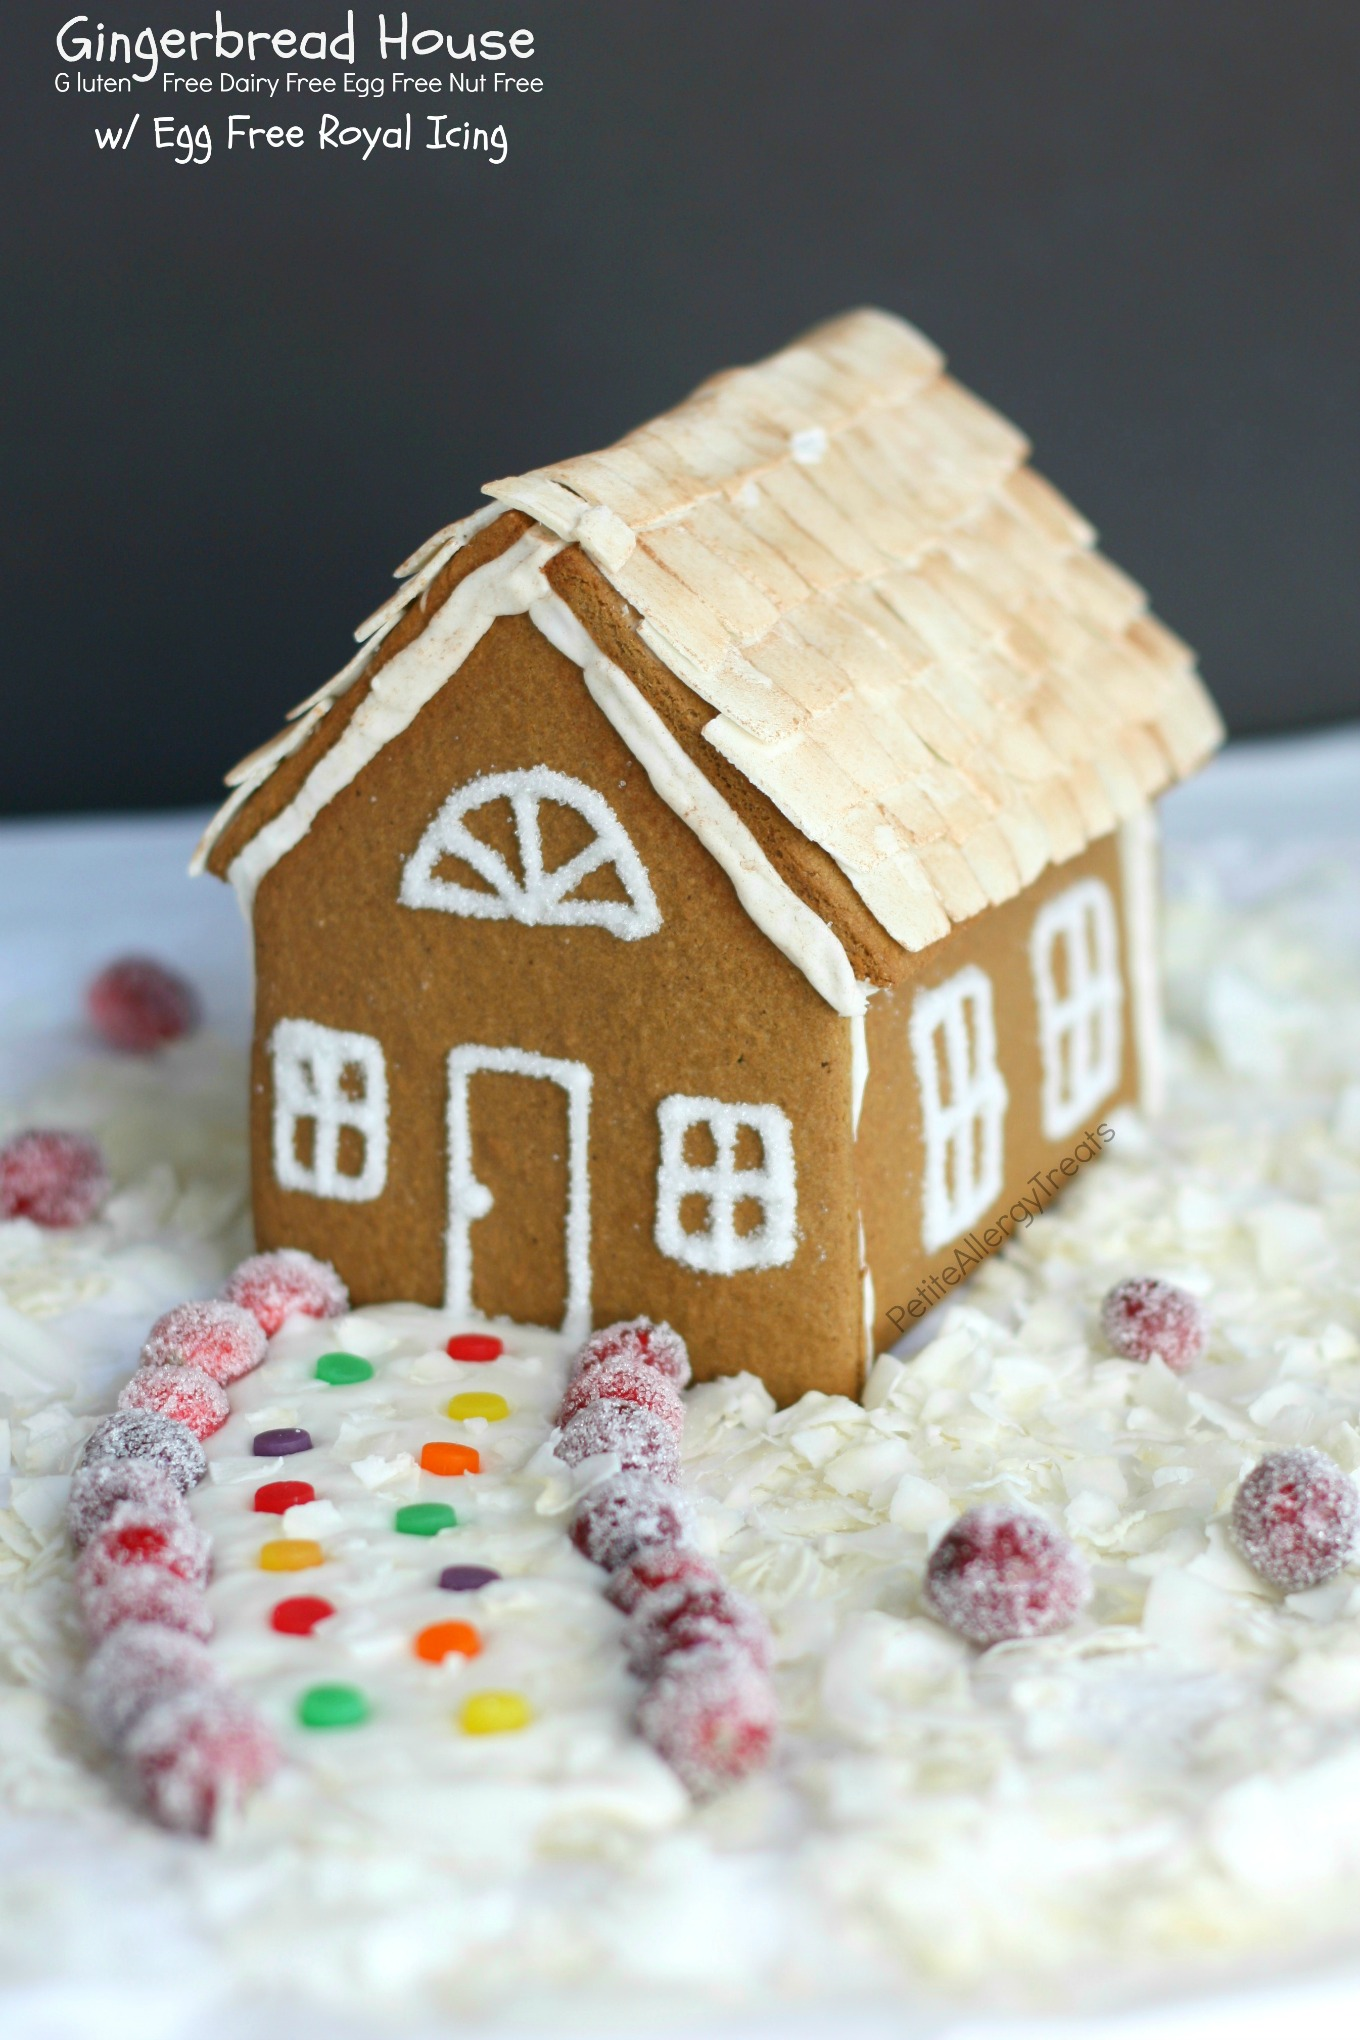 Gluten Free Vegan Gingerbread House Recipe (dairy free egg free)- Food allergy friendly gingerbread with Egg free Royal Icing